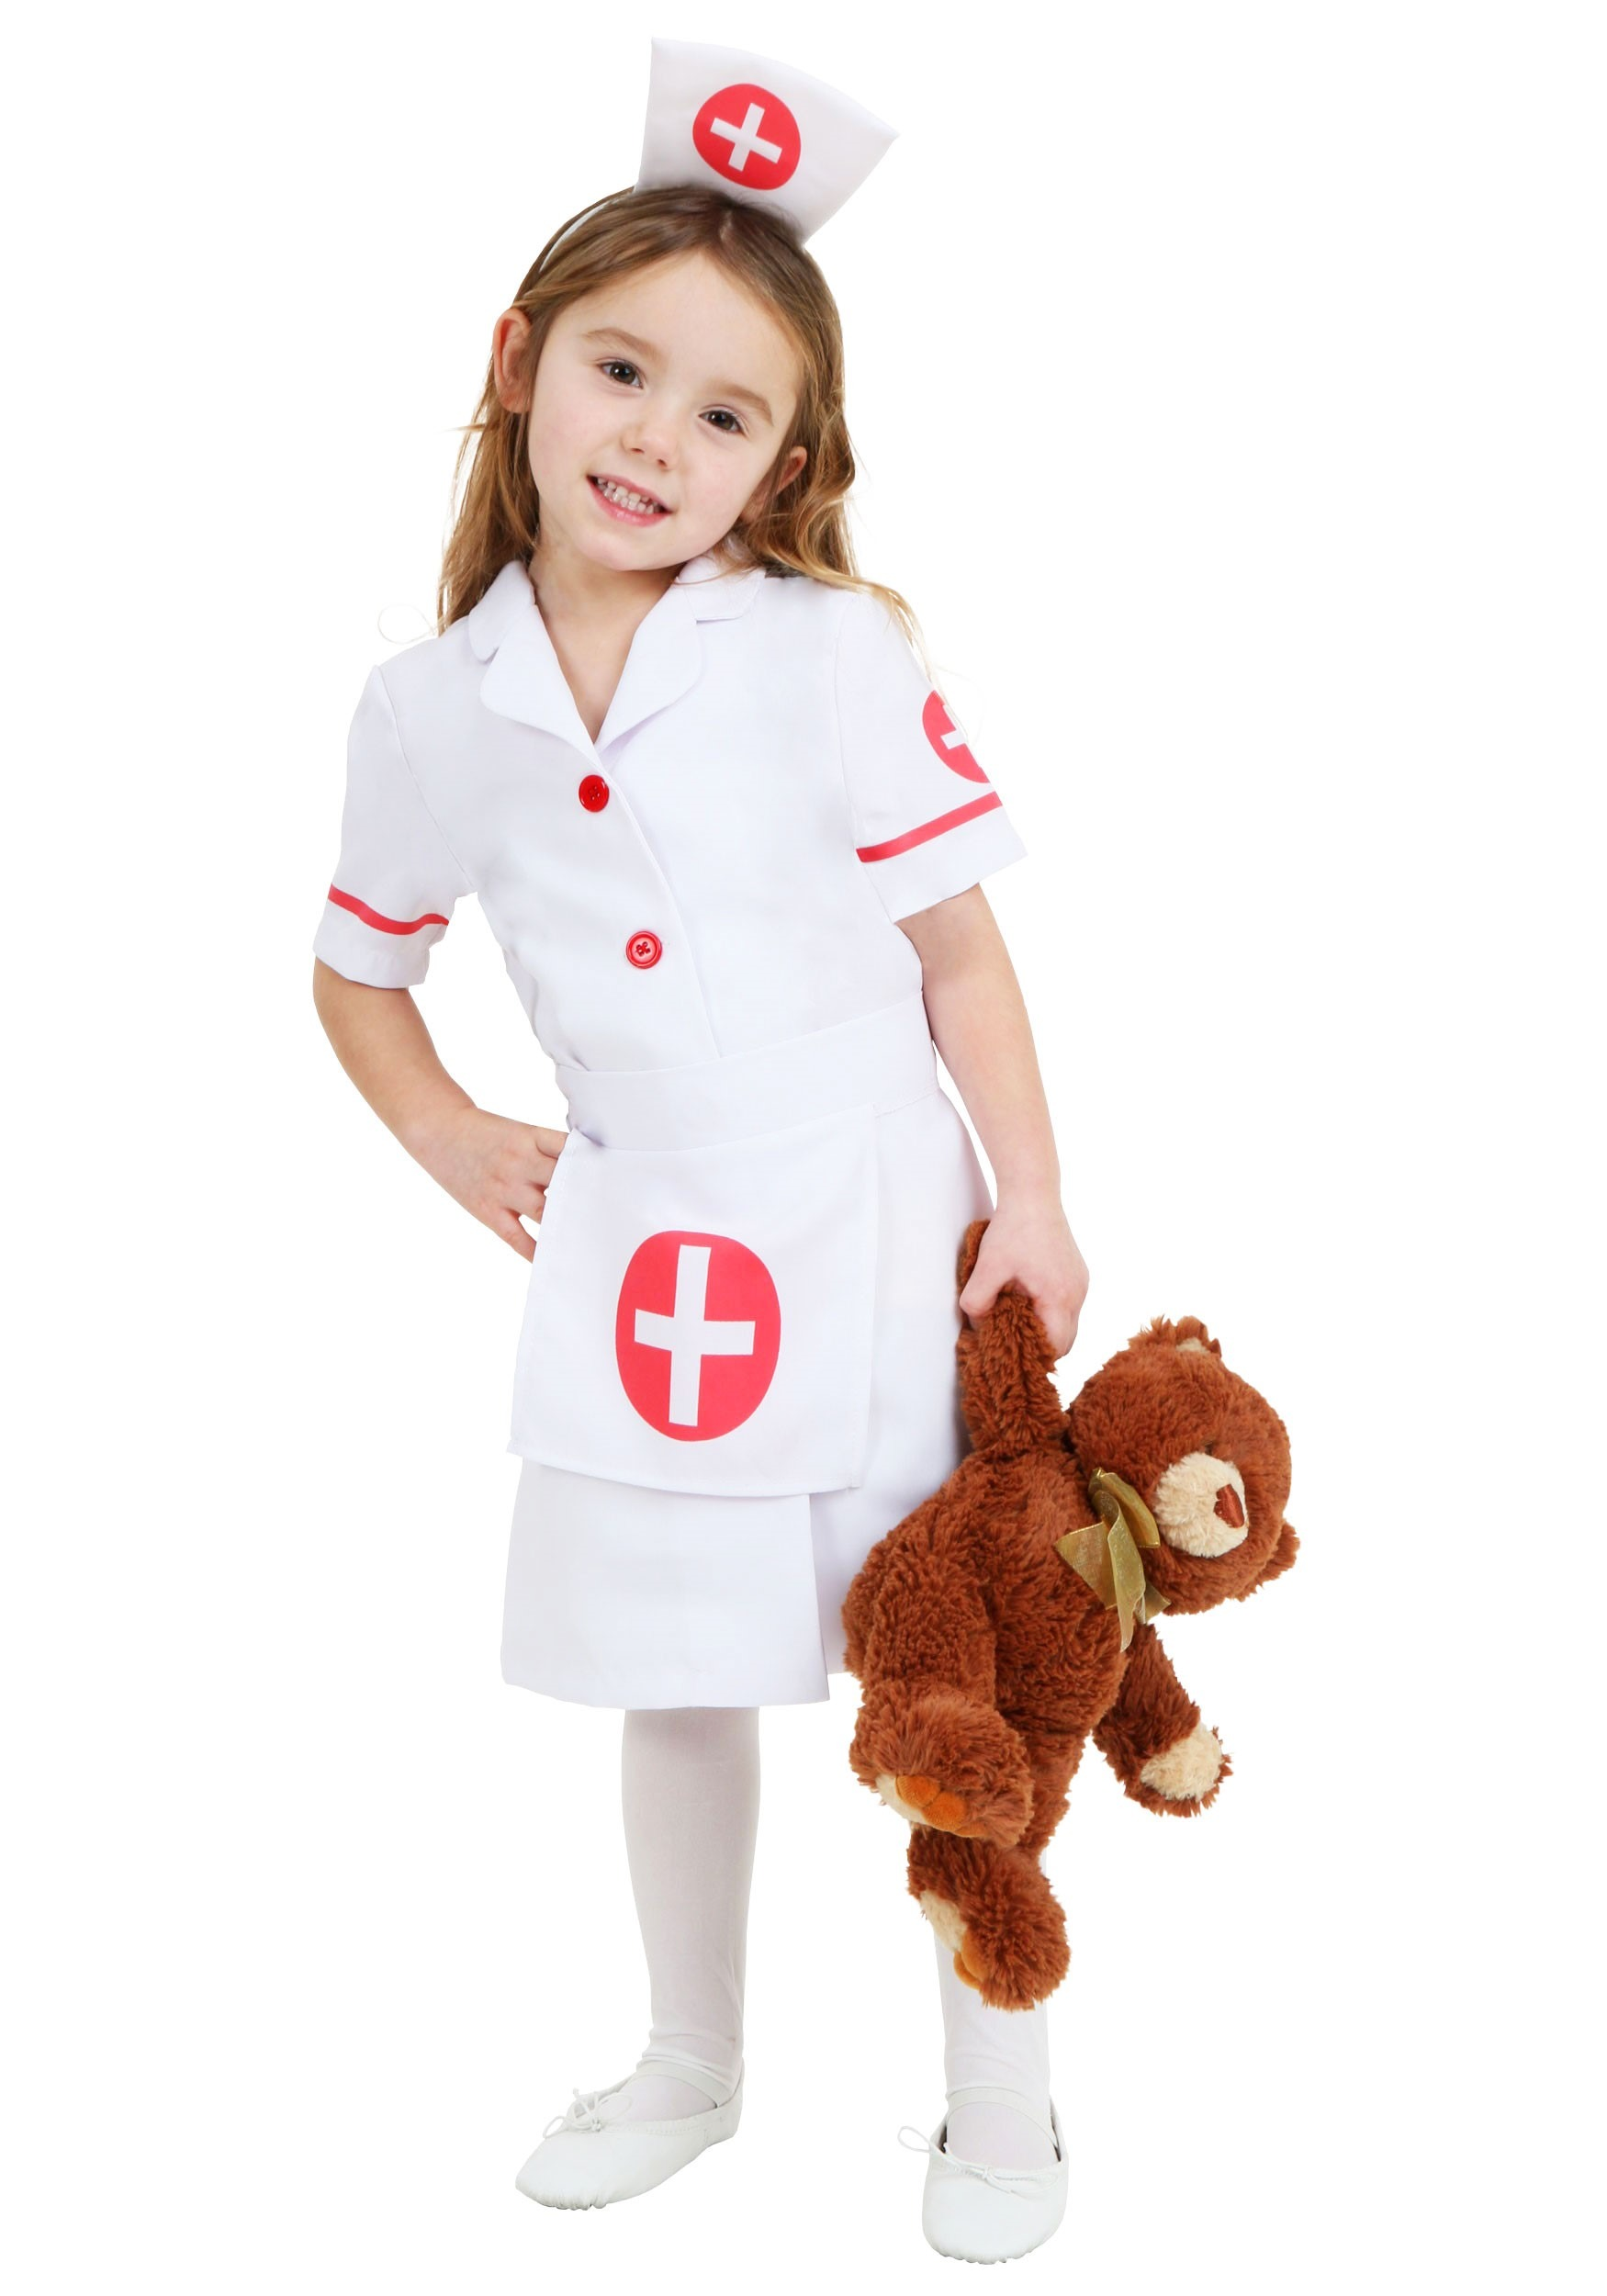 Toddler Nurse Costume  sc 1 st  Halloween Costumes & Child Nurse Costumes - Kids Doctor and Nurse Costume